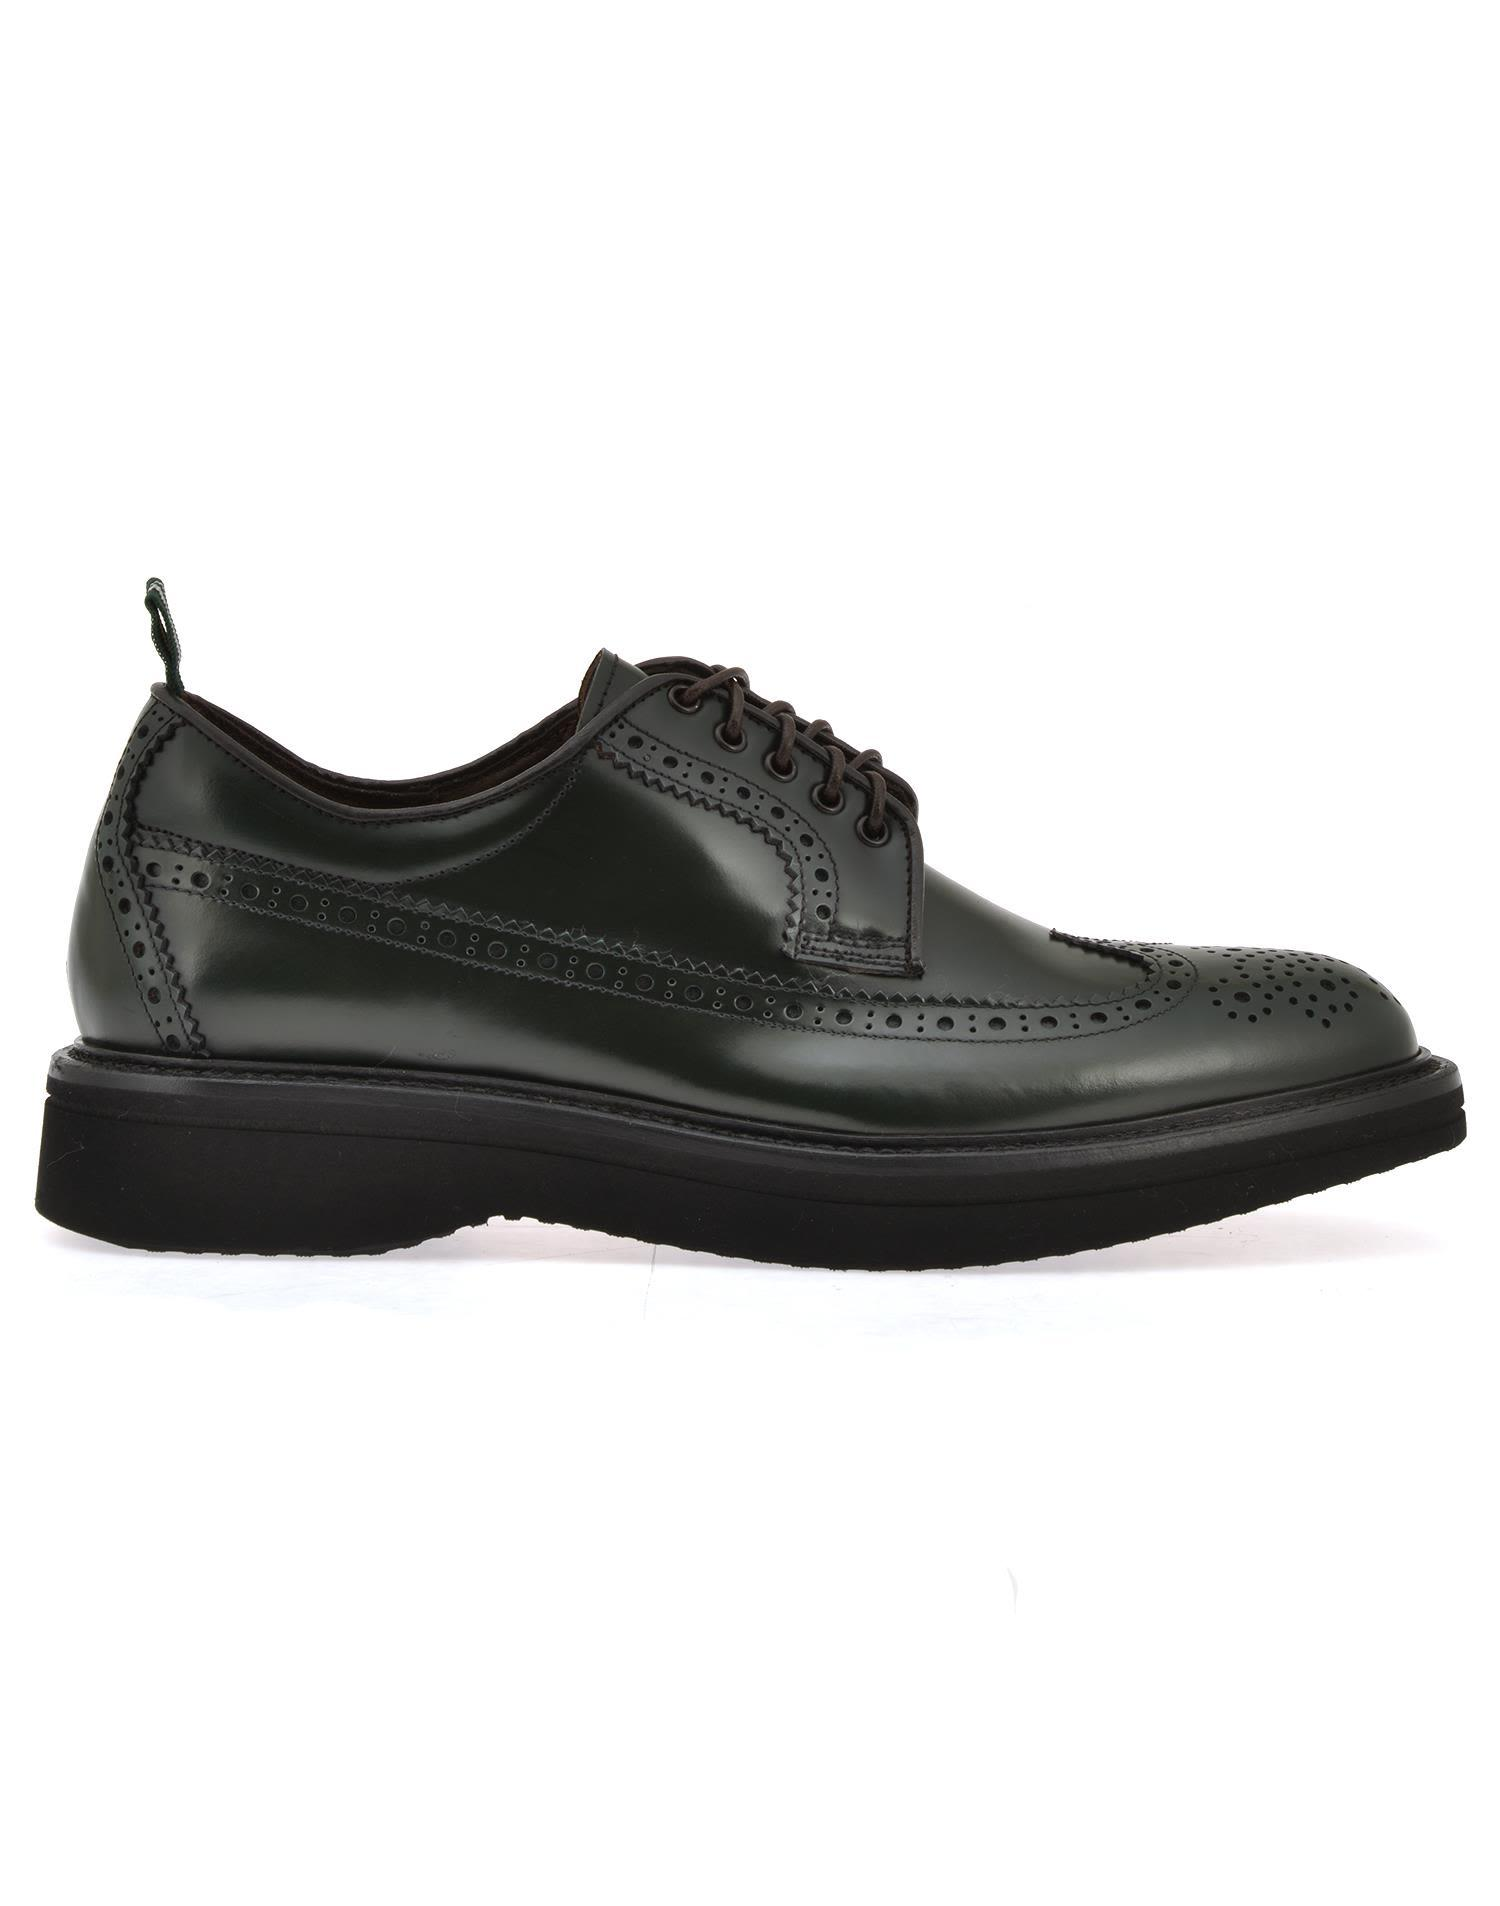 Green George Leather Lace Up Shoe In Black